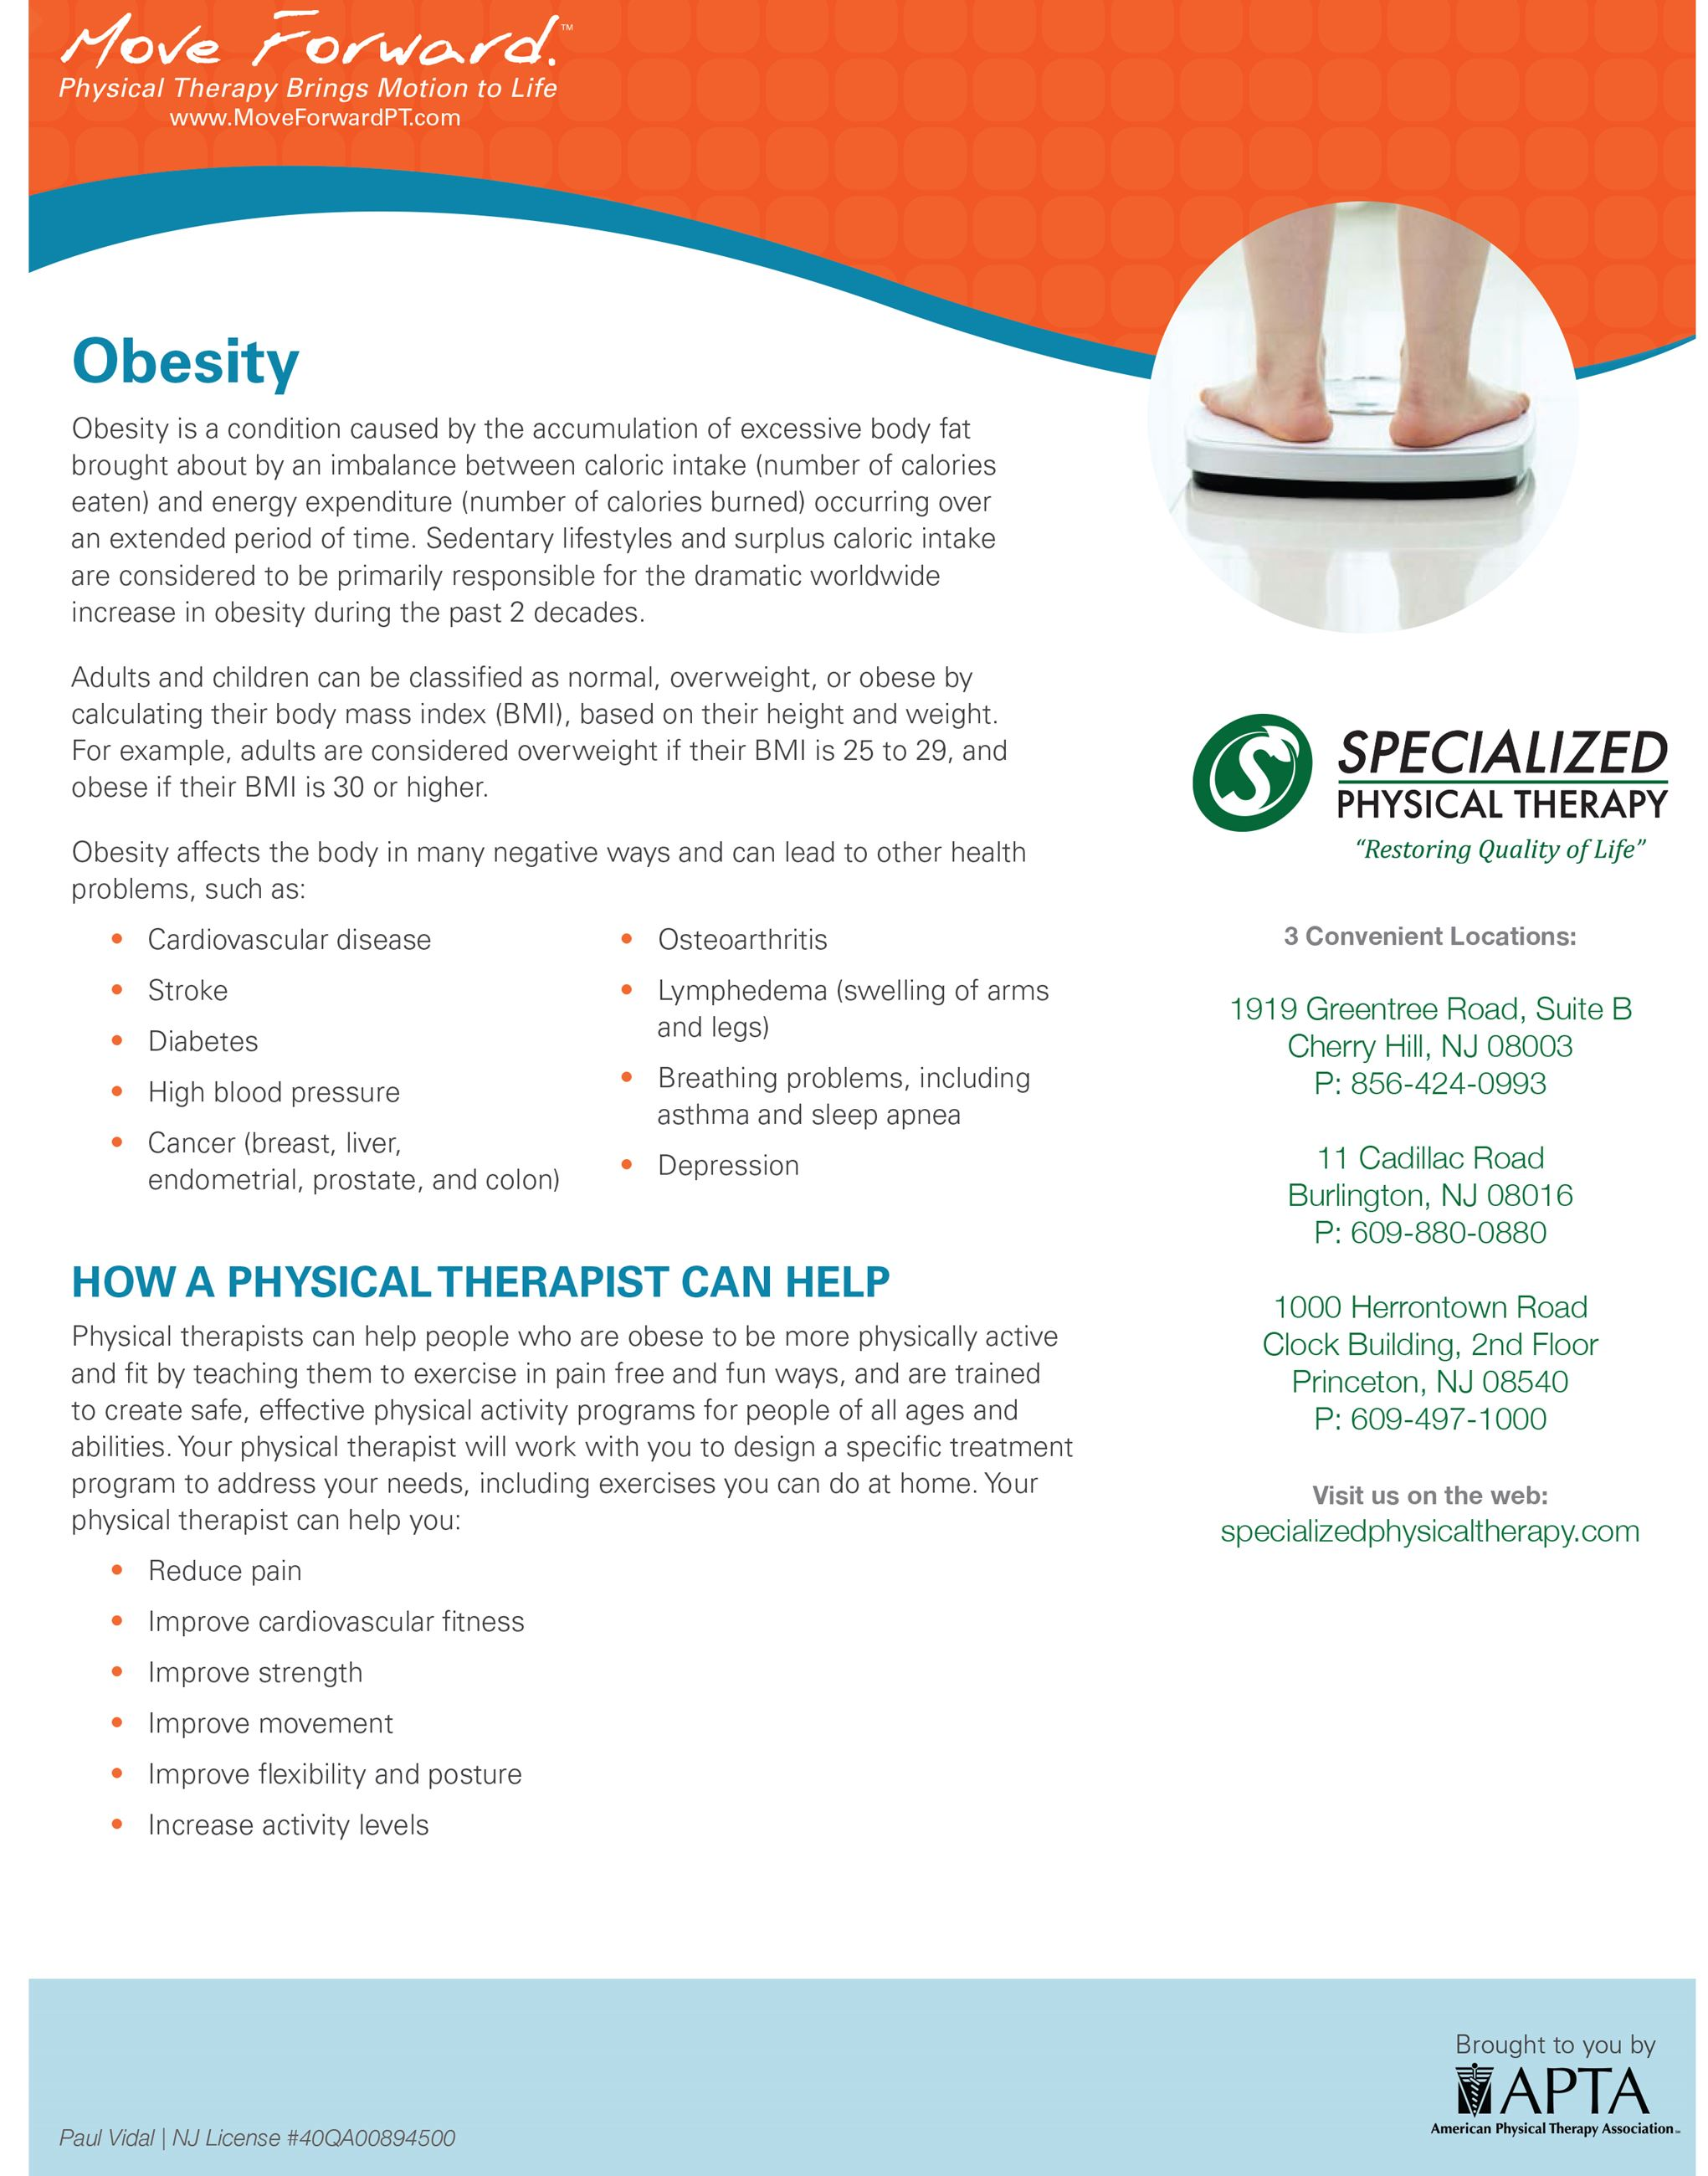 Specialized Physical Therapy - Obesity Flyer (PDF) Opens in new window